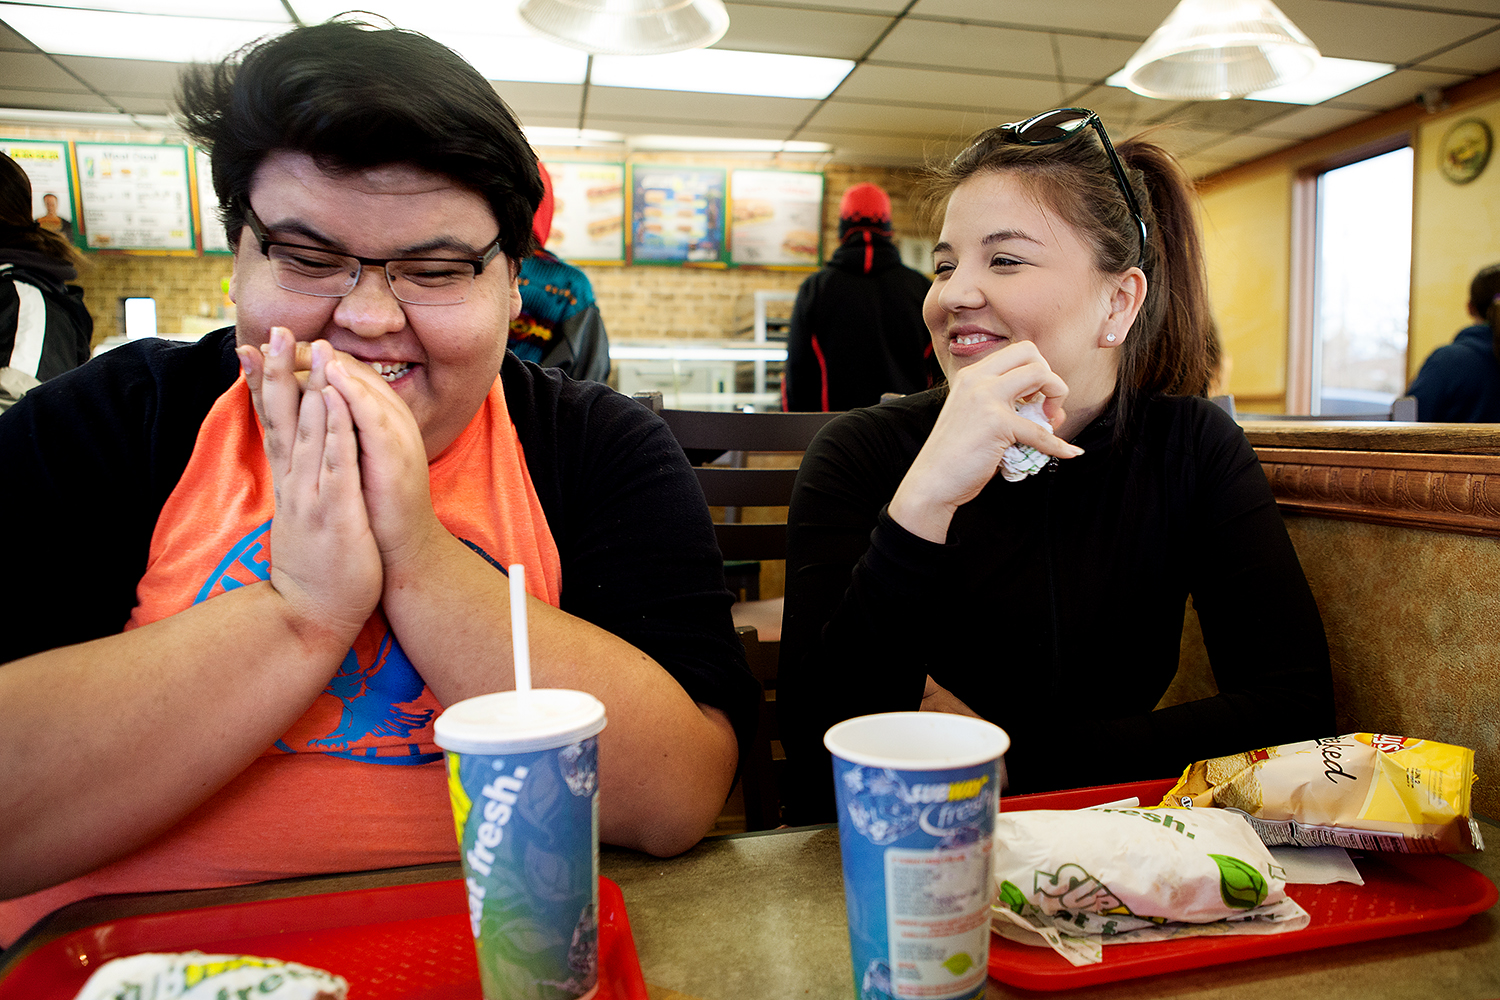 Dakota and his cousin, Kayla, laugh and eat at a Subway in Browning, Montana.